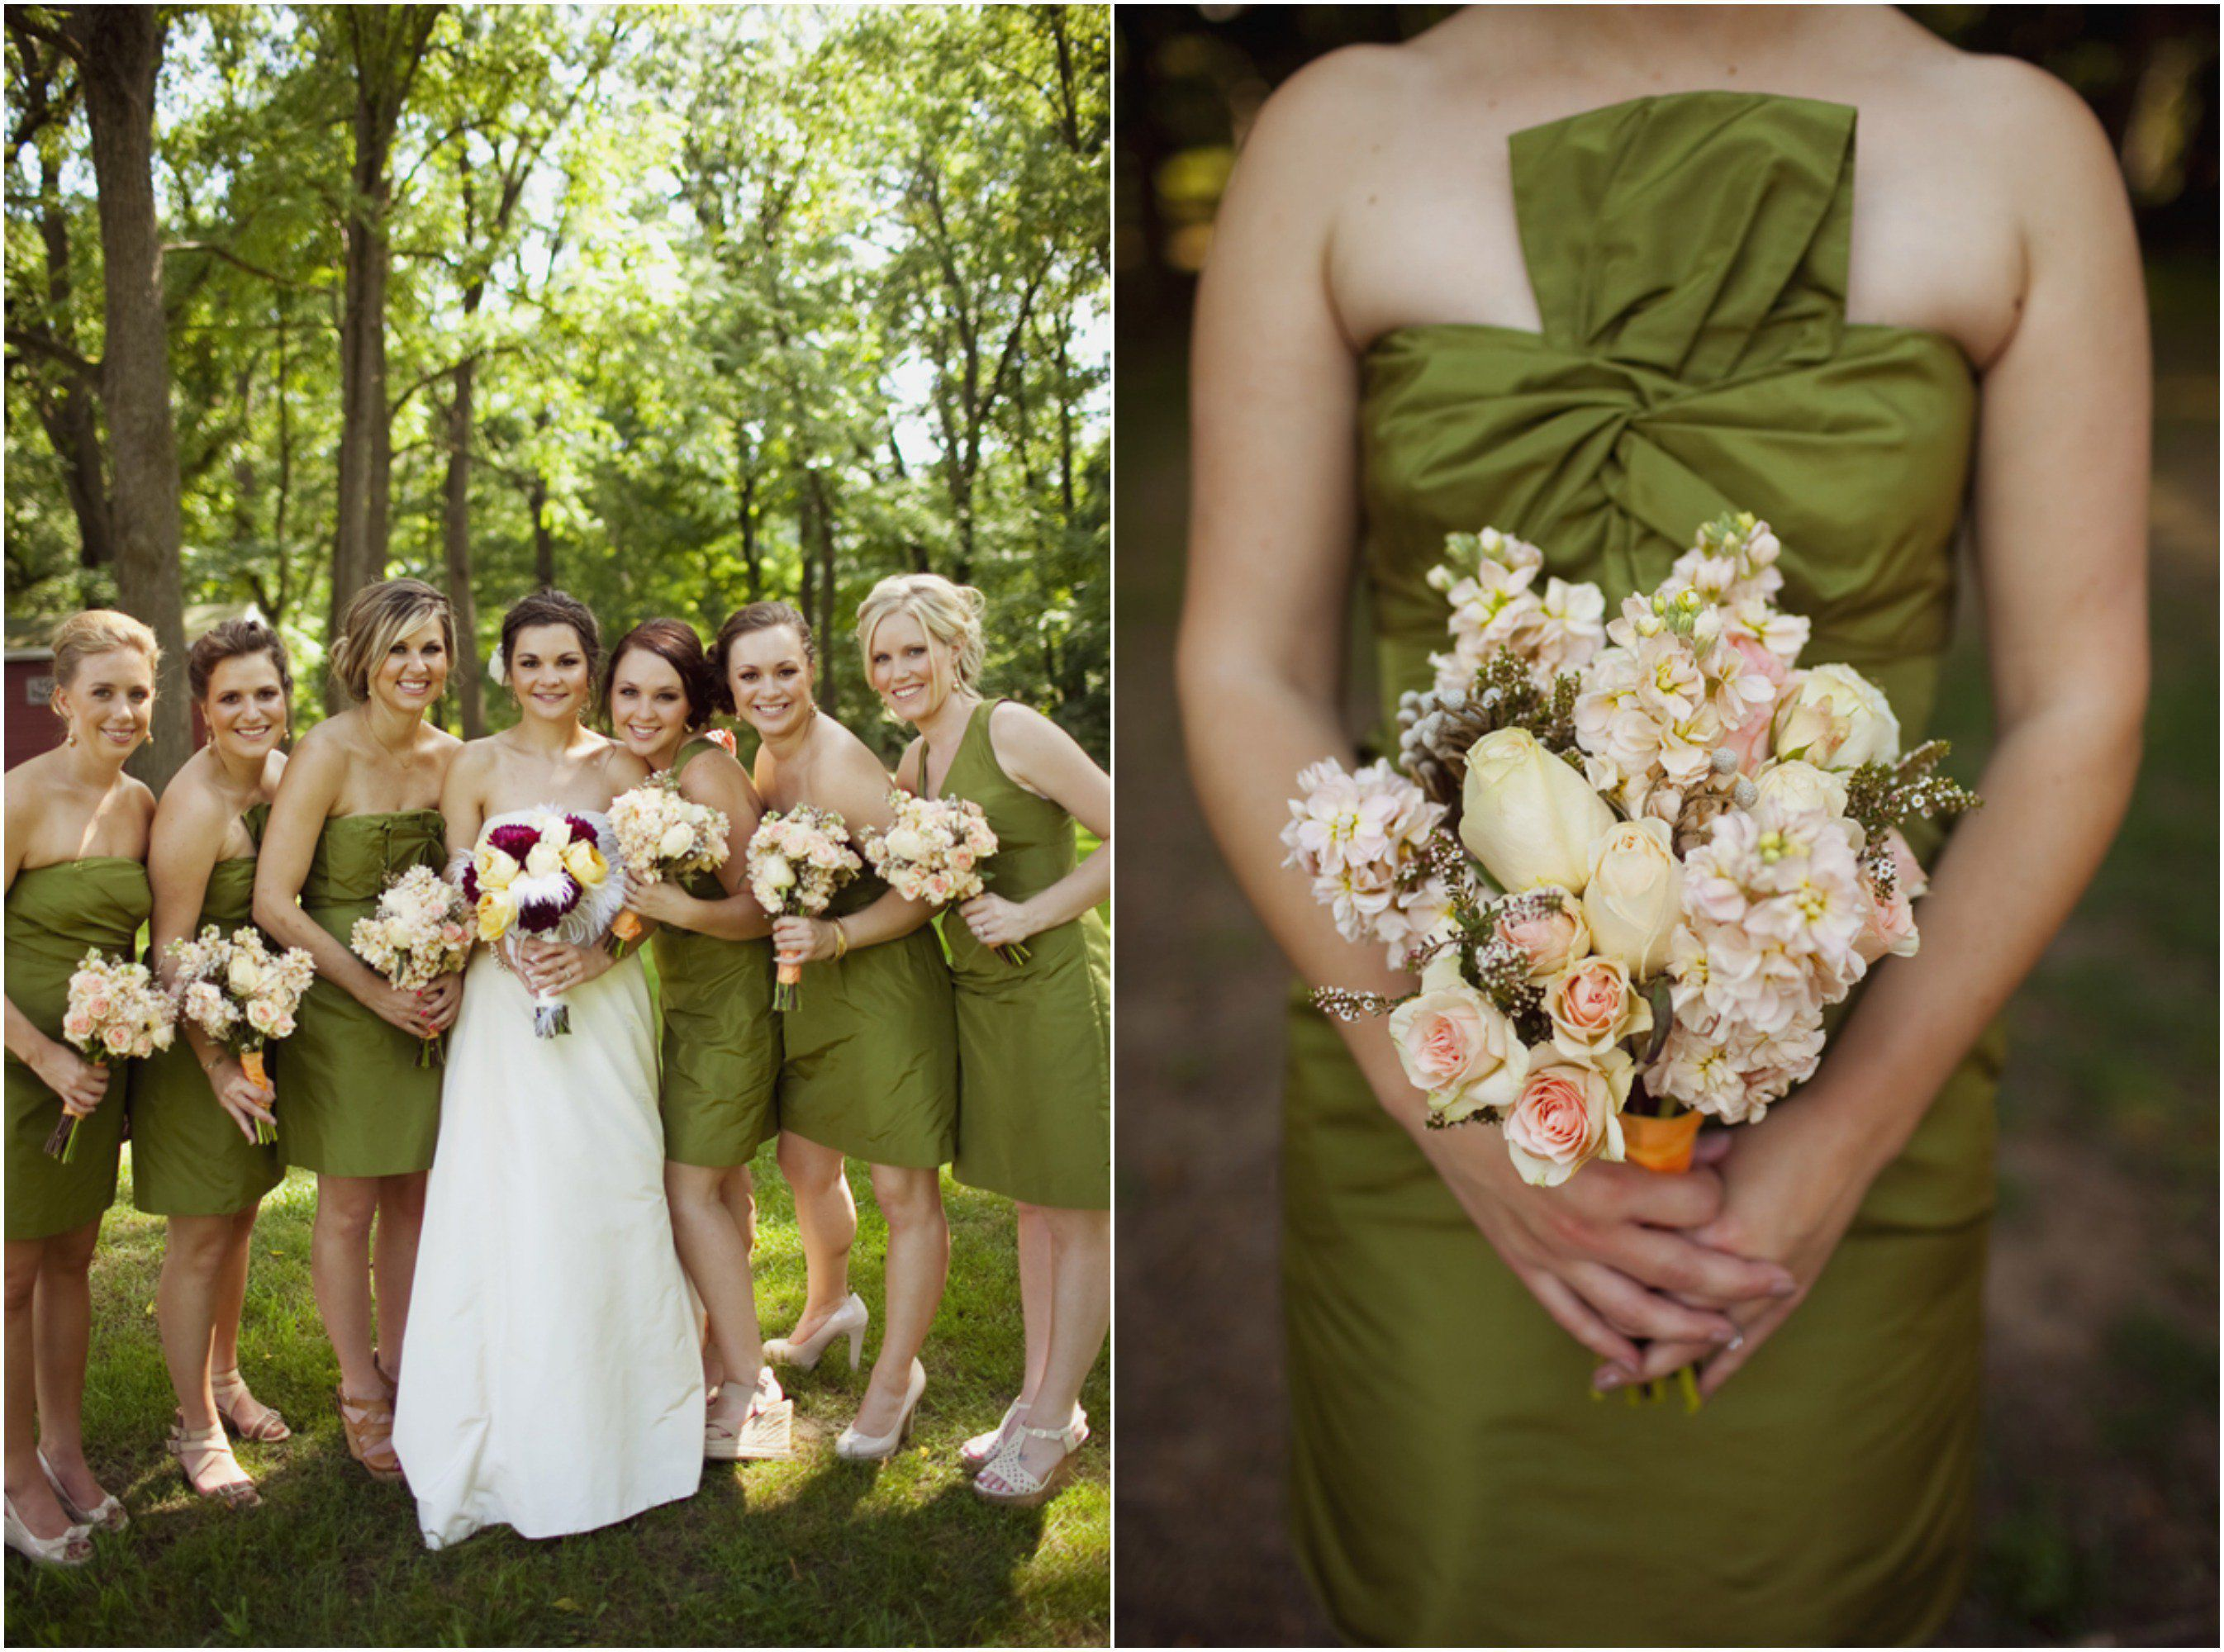 Olive green wedding color trend in 2017